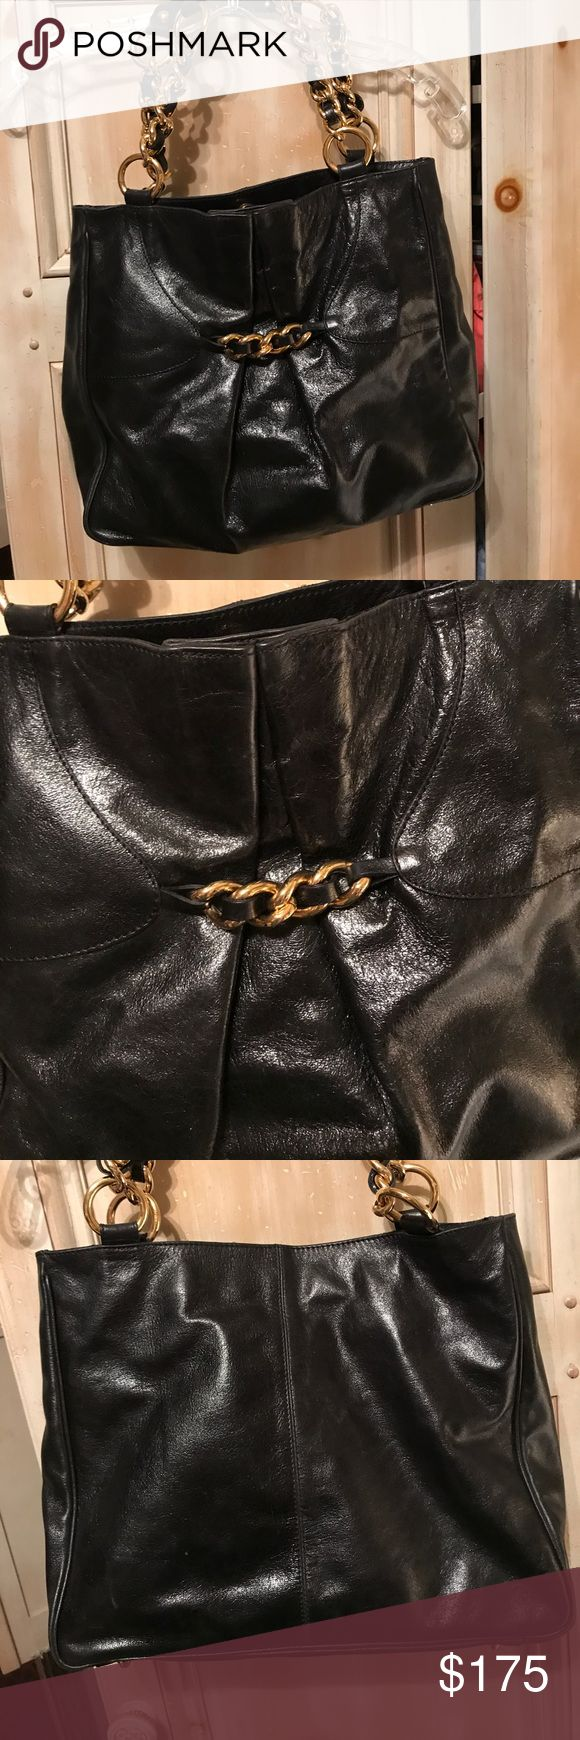 Doncaster designer handbag from Italy This is a brand-new handbag made by Doncaster that is a $400 handbag made in Italy of Italian leather Has thick gold chain and leather straps. Doncaster Other